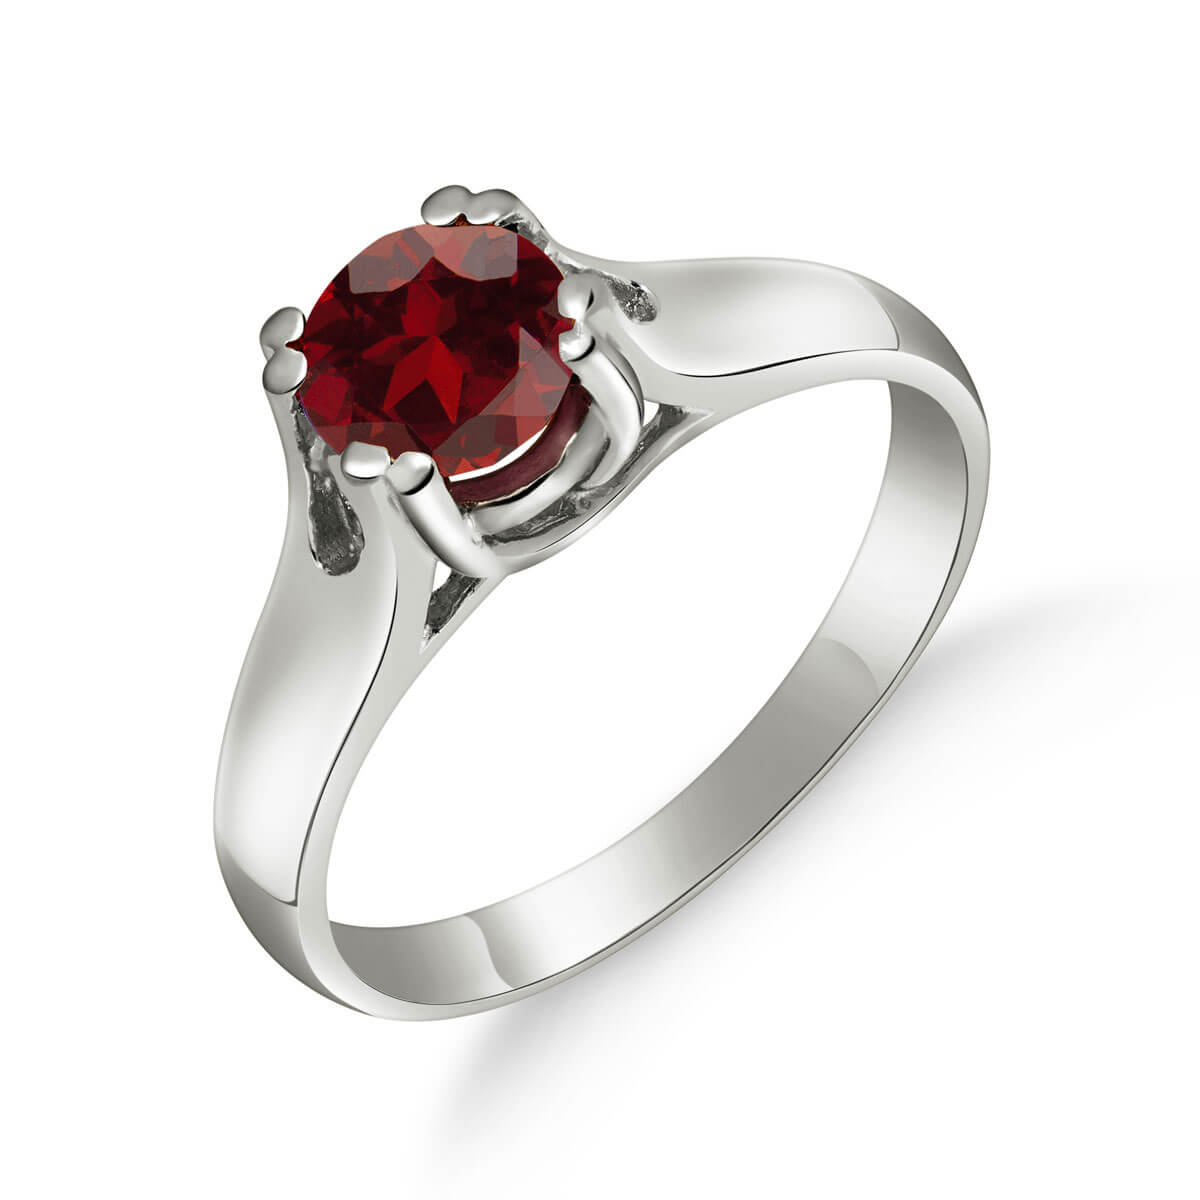 Garnet Solitaire Ring 1.1 ct in 9ct White Gold